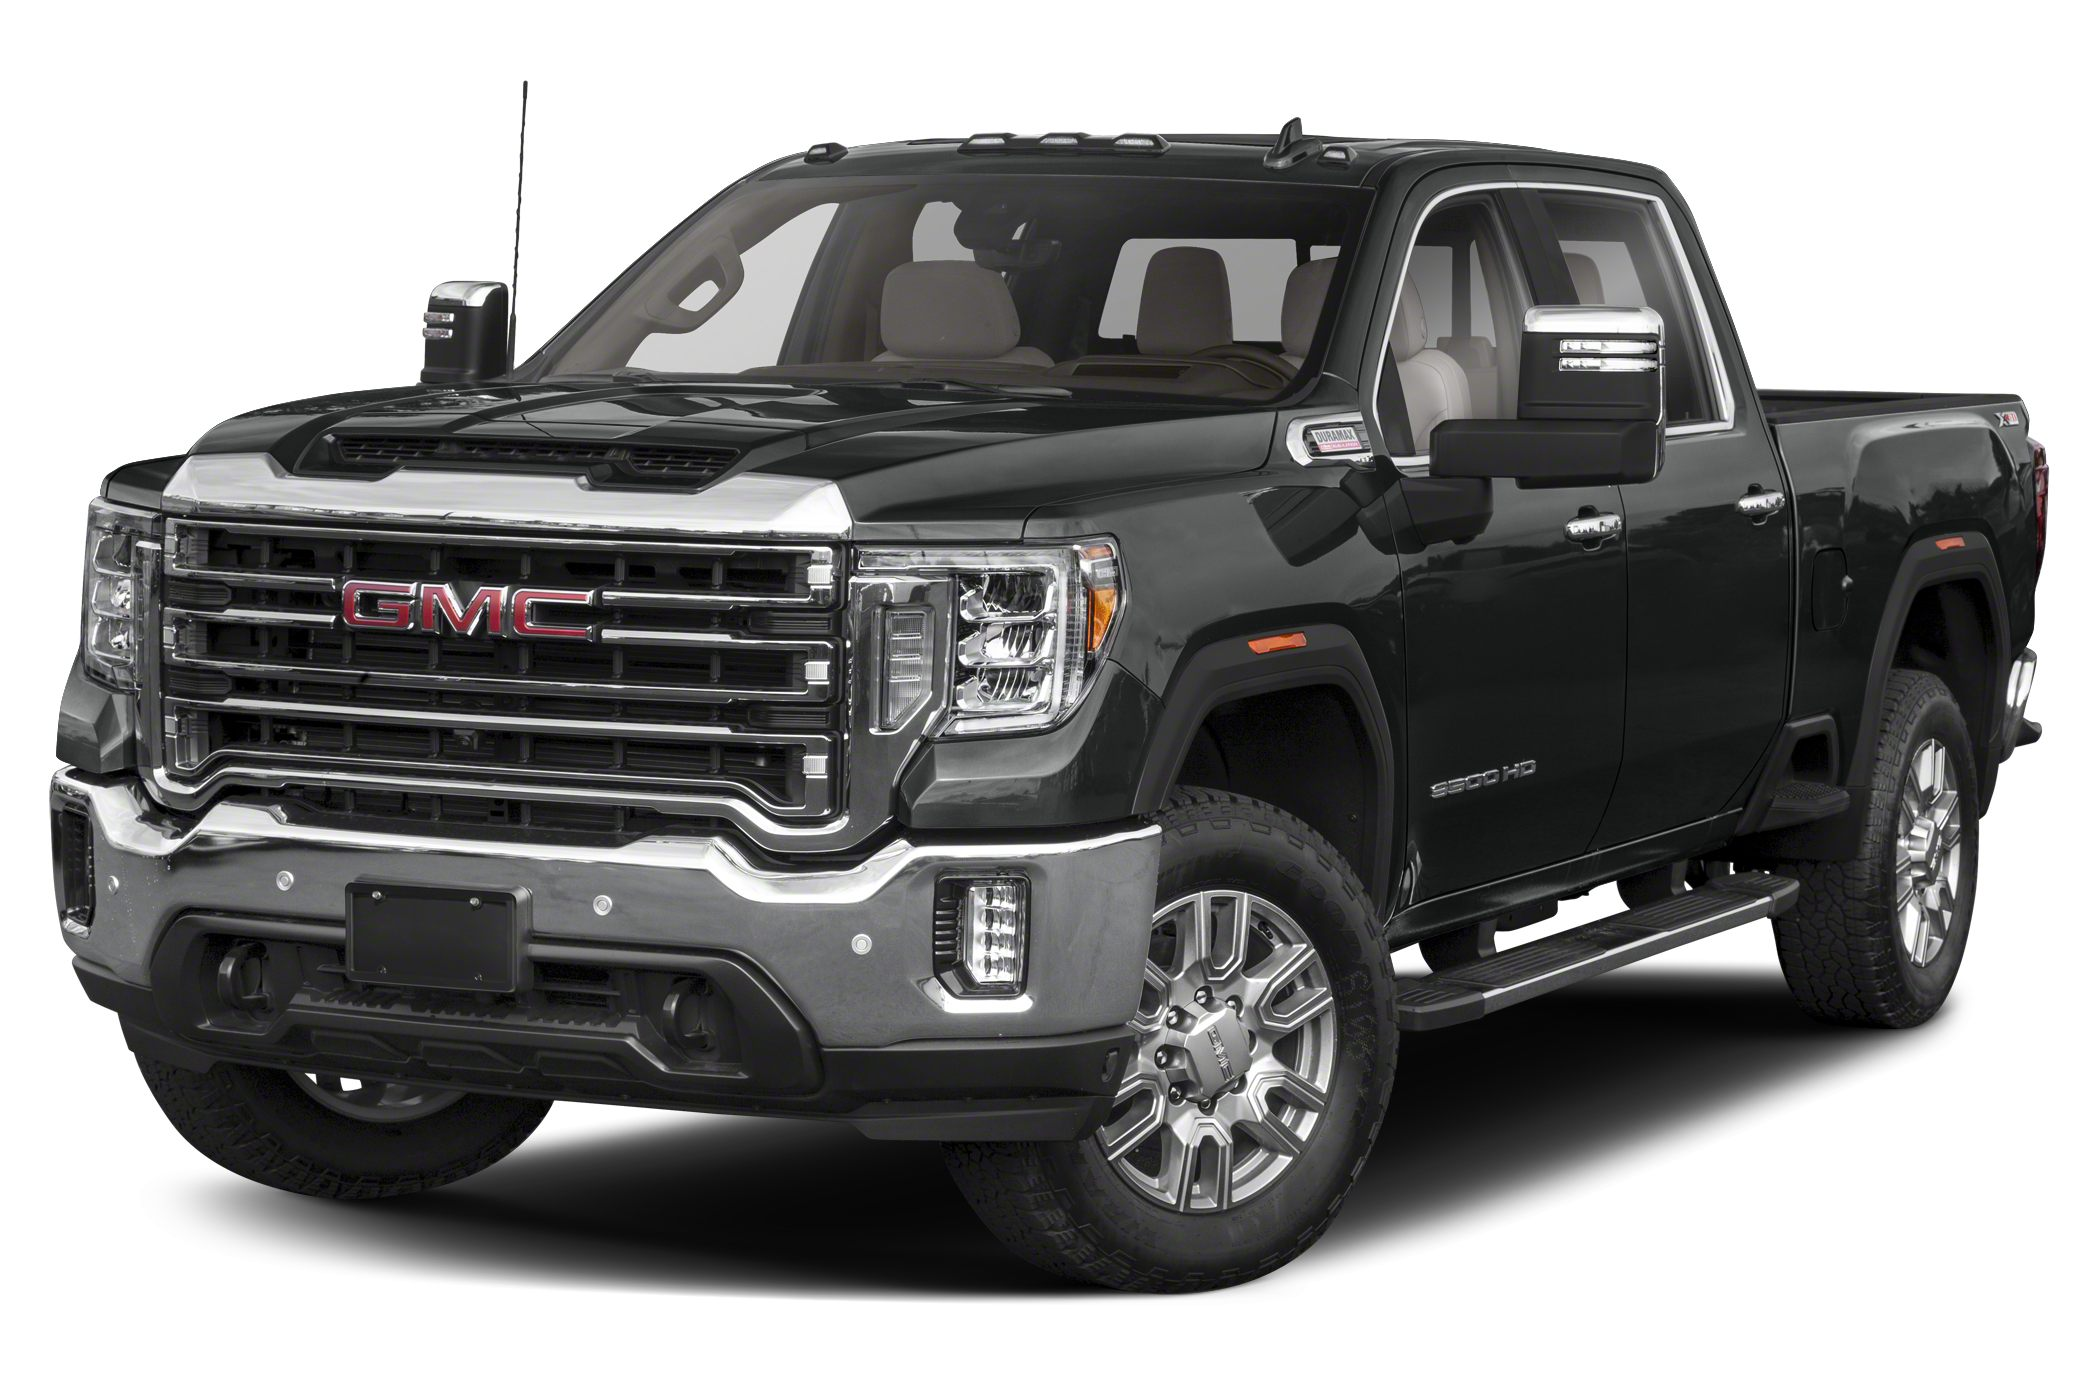 2021 Gmc Sierra 3500hd Denali 4x4 Crew Cab 8 Ft Box 172 In Wb Srw Specs And Prices